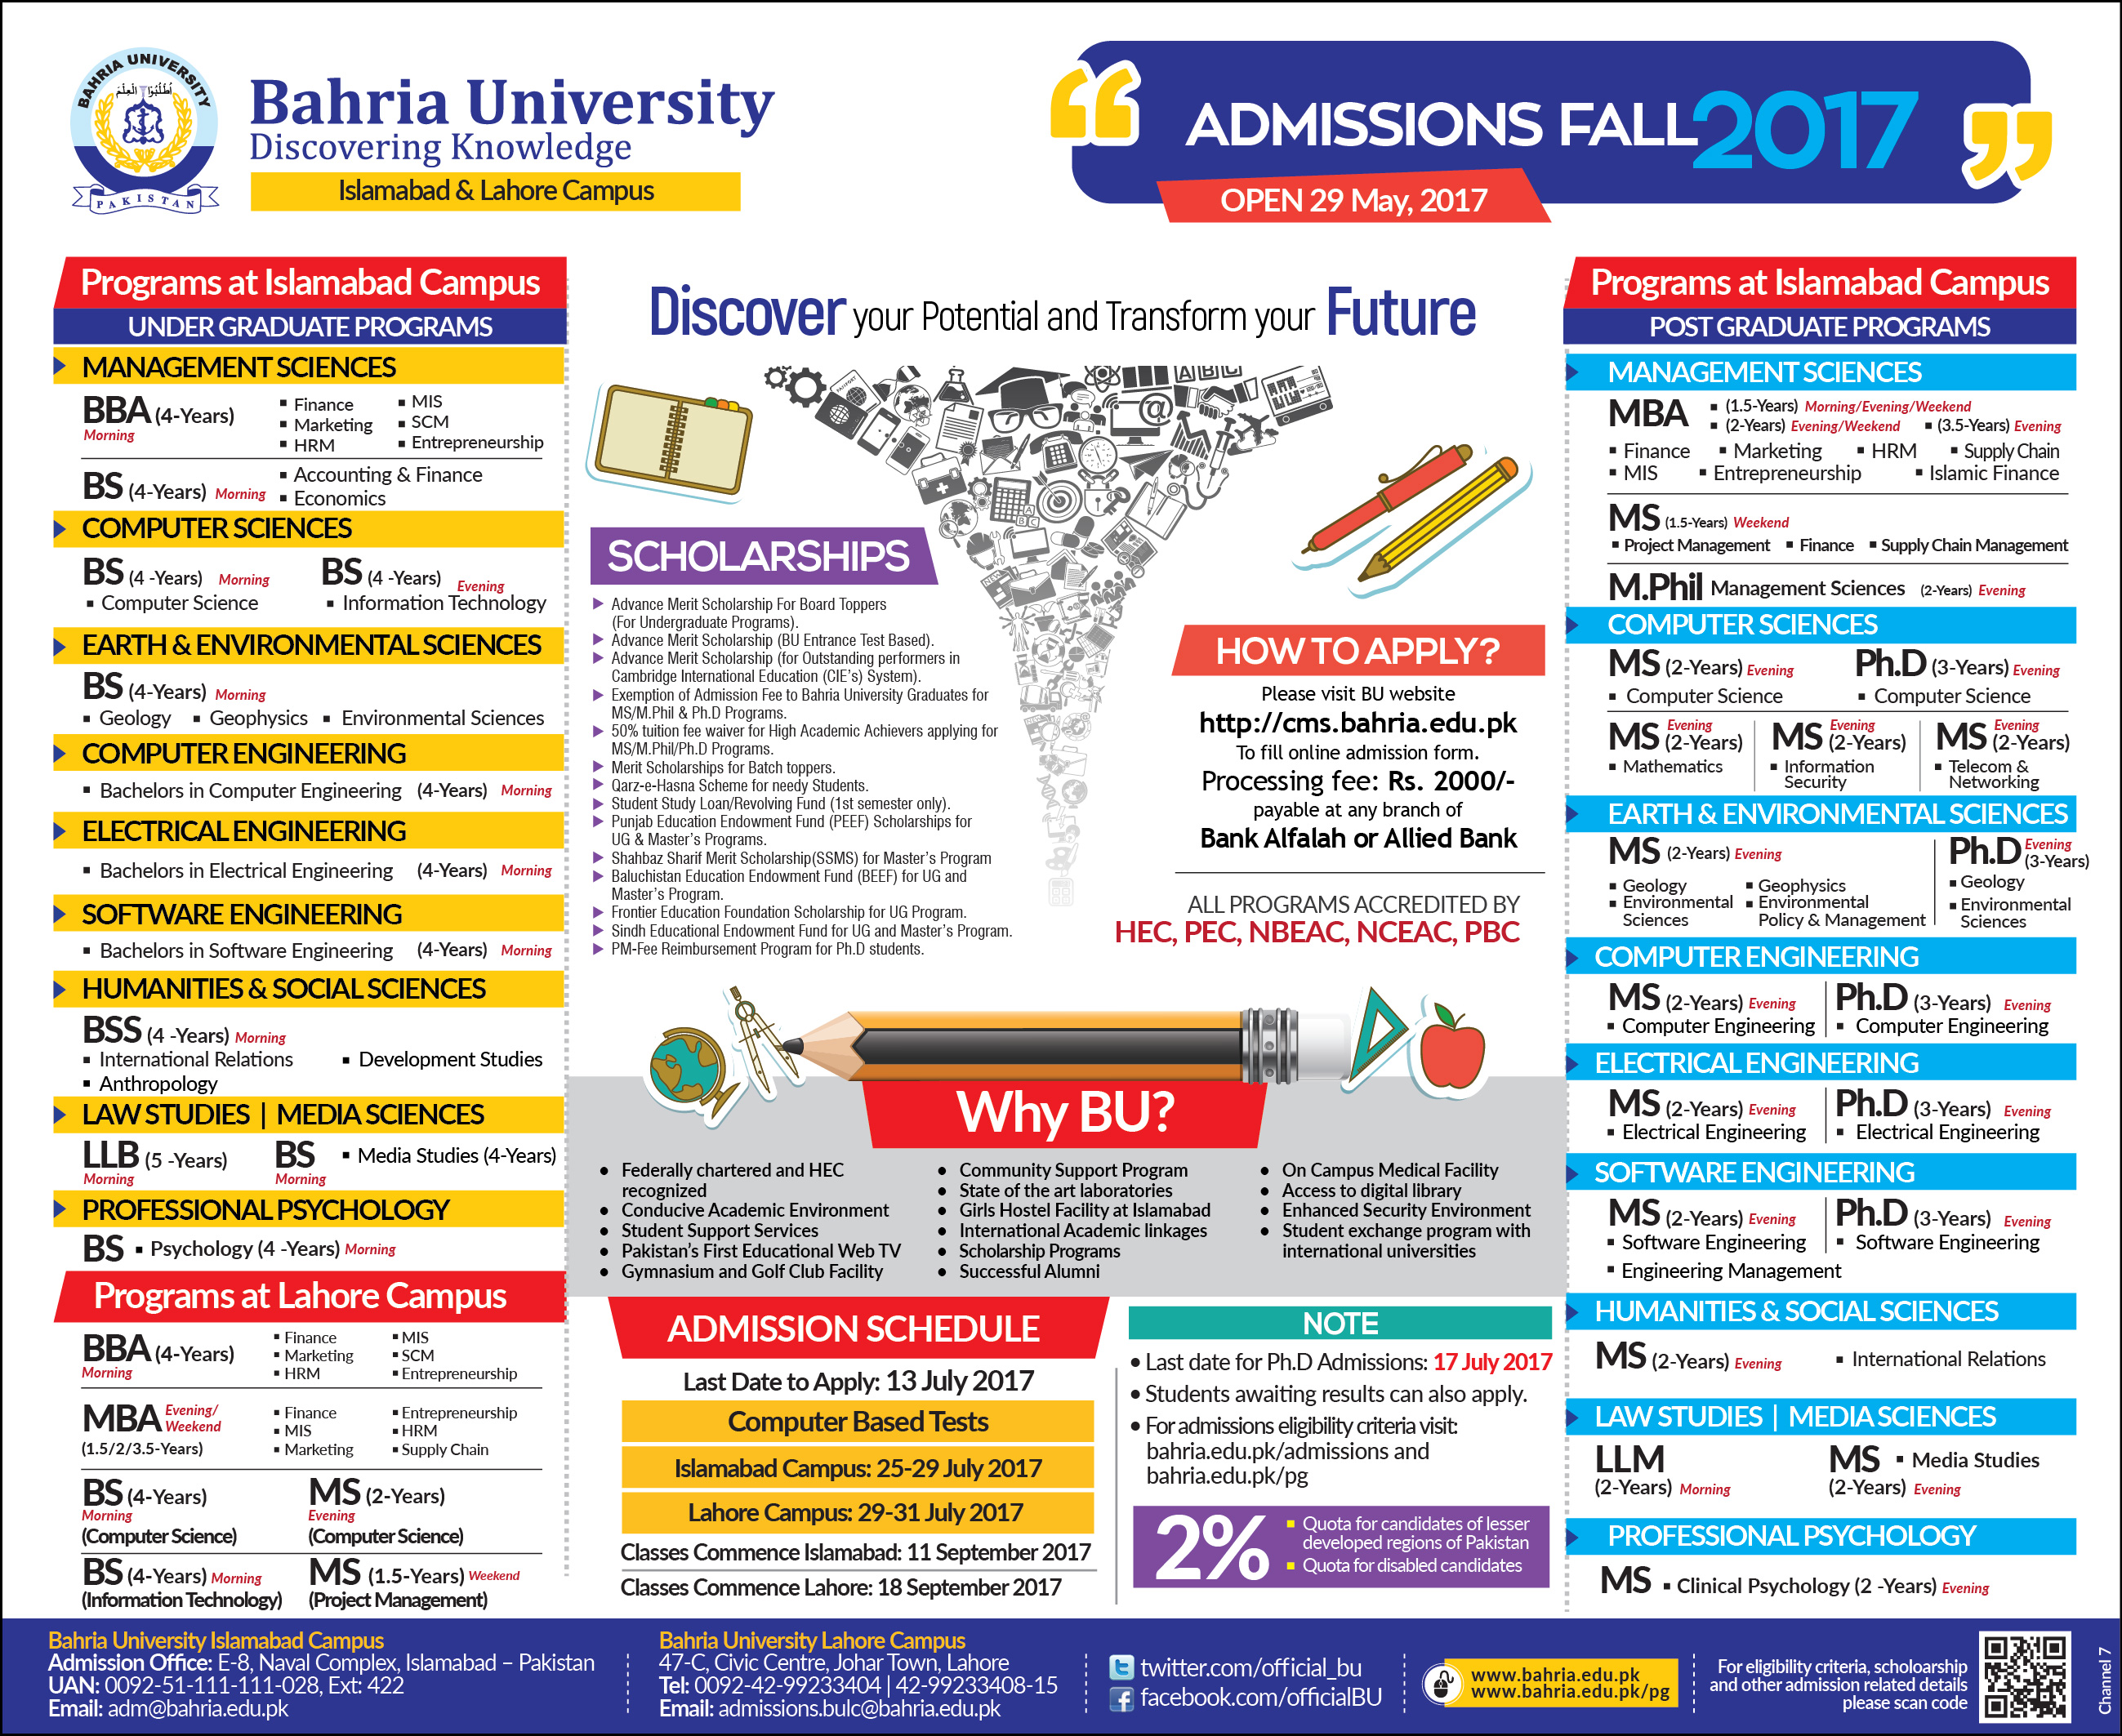 Bahria University (BU) Admissions Fall – 2017